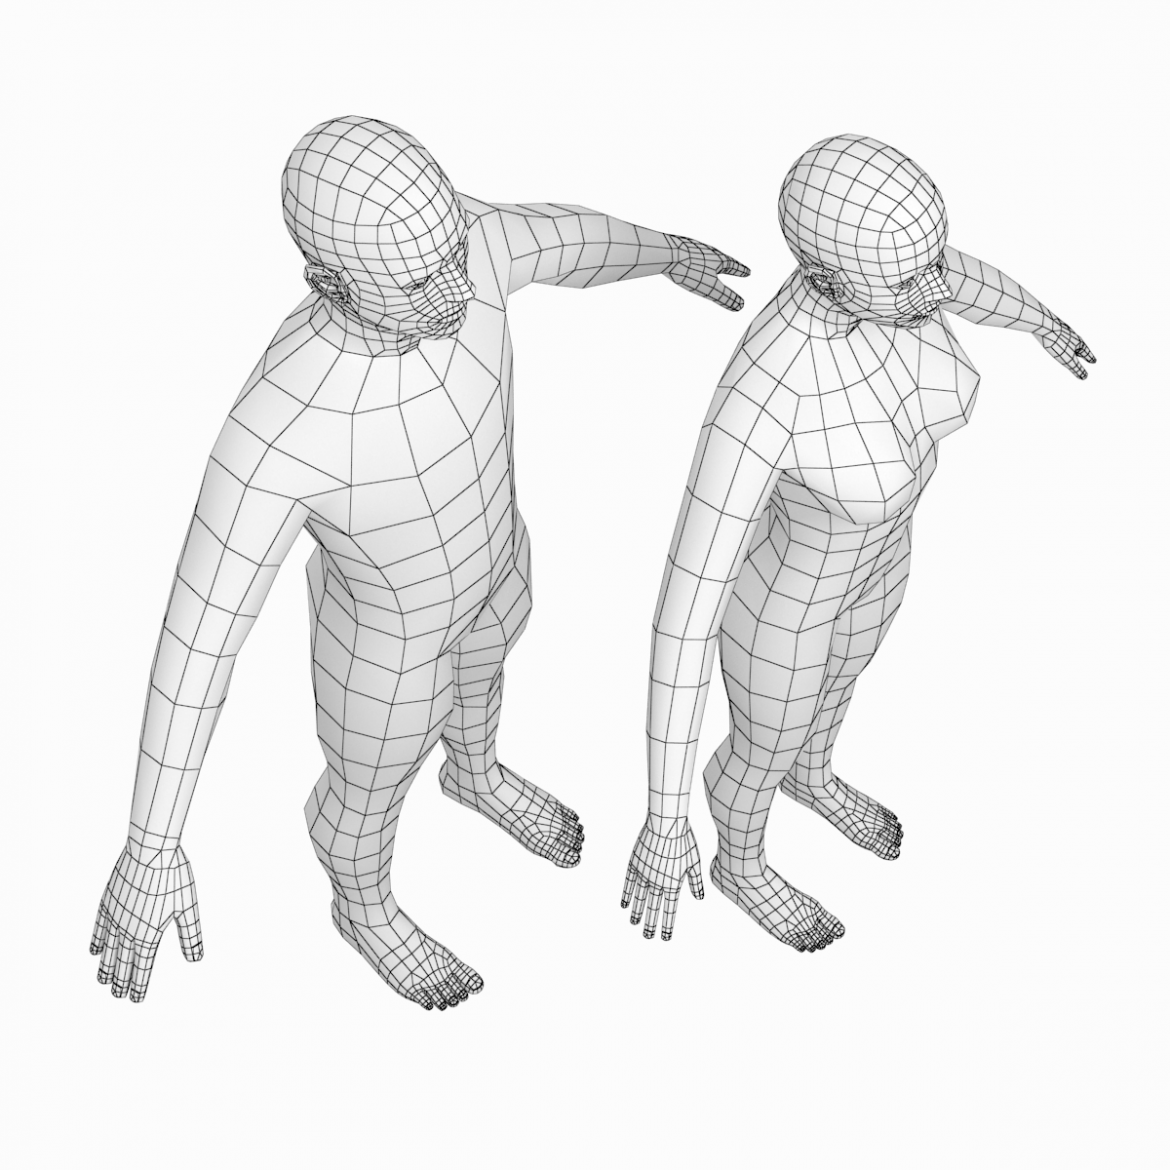 female and male base mesh in a-pose 3d model 3ds max dxf dwg fbx c4d dae ma mb  obj 301397